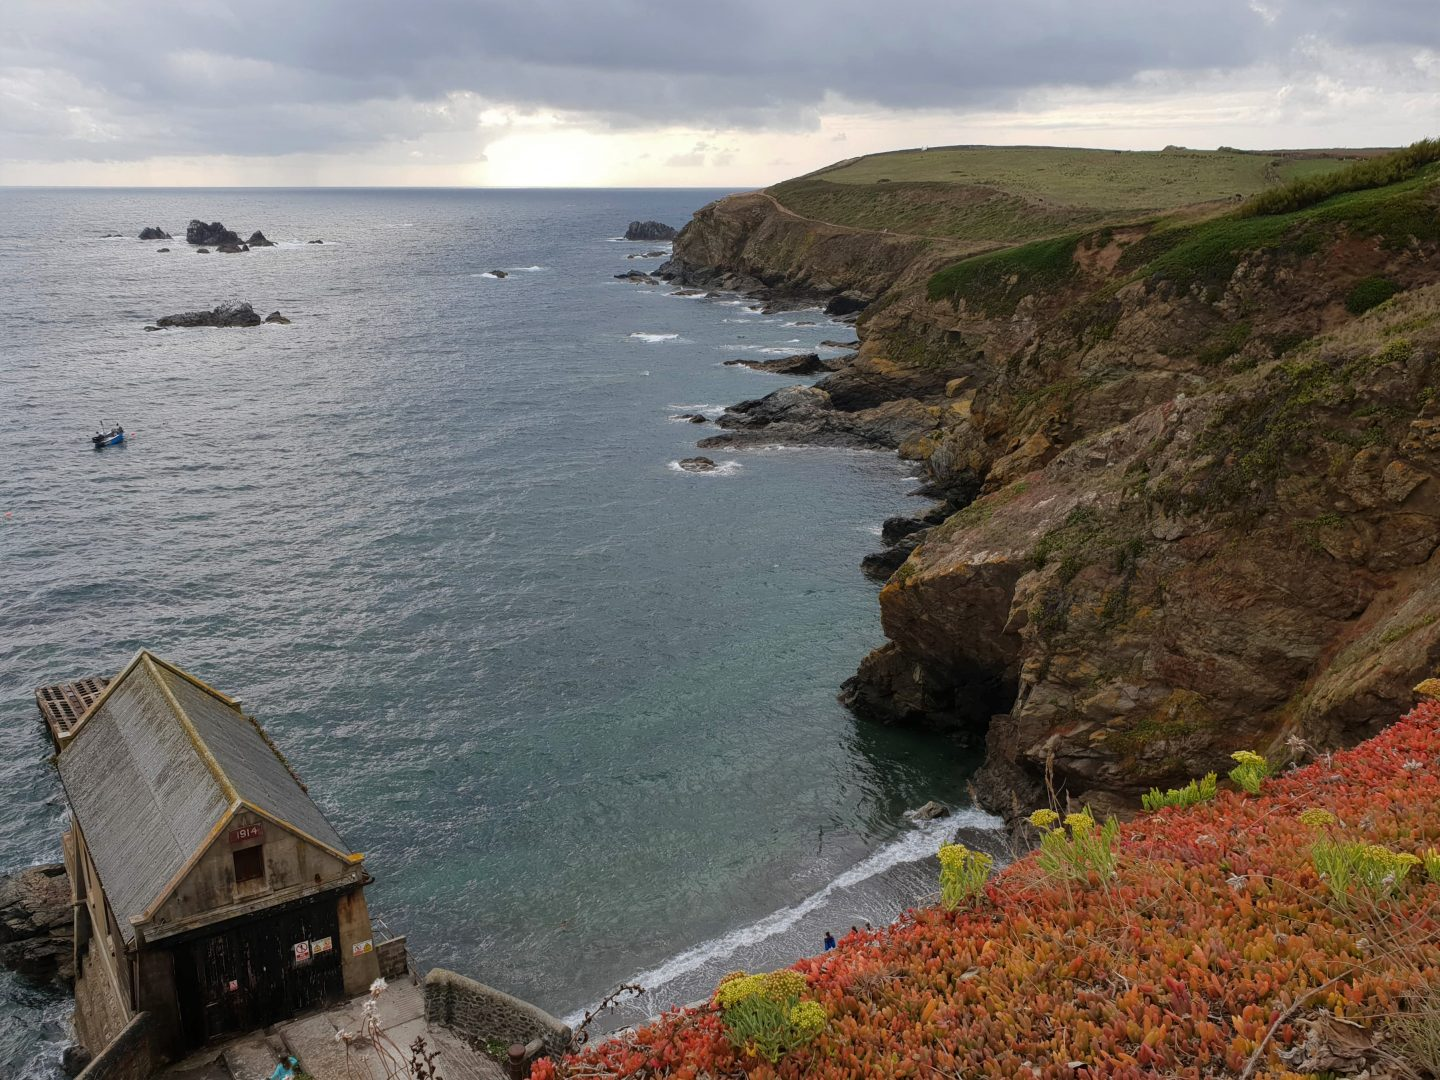 The Lizard Peninsula in Cornwall